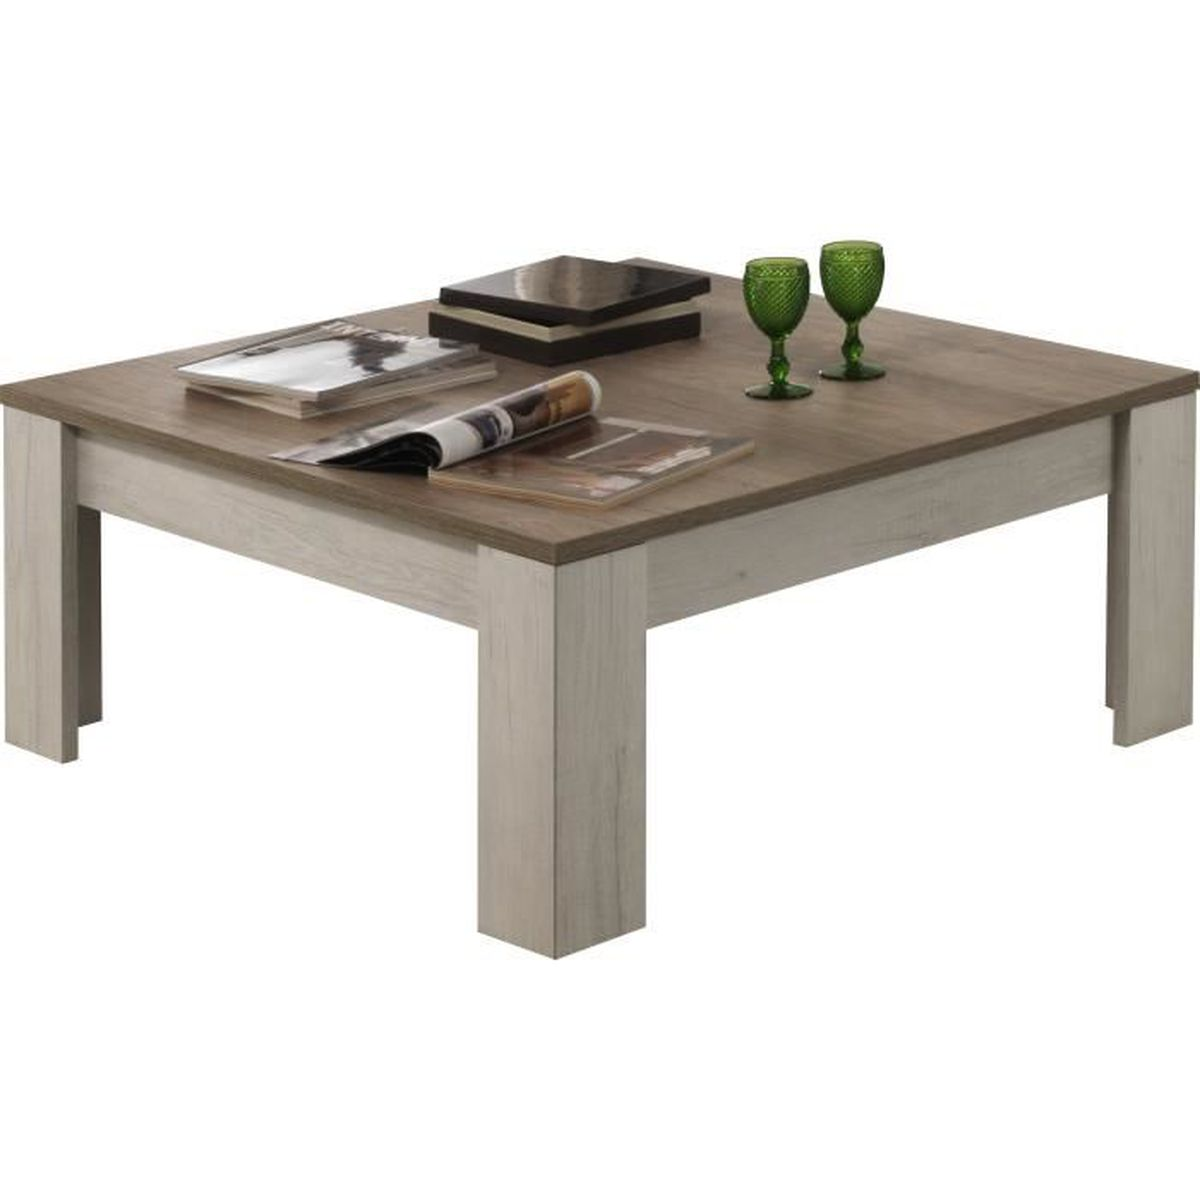 Table basse carr e contemporaine 100 cm coloris ch ne - Table carree chene clair ...